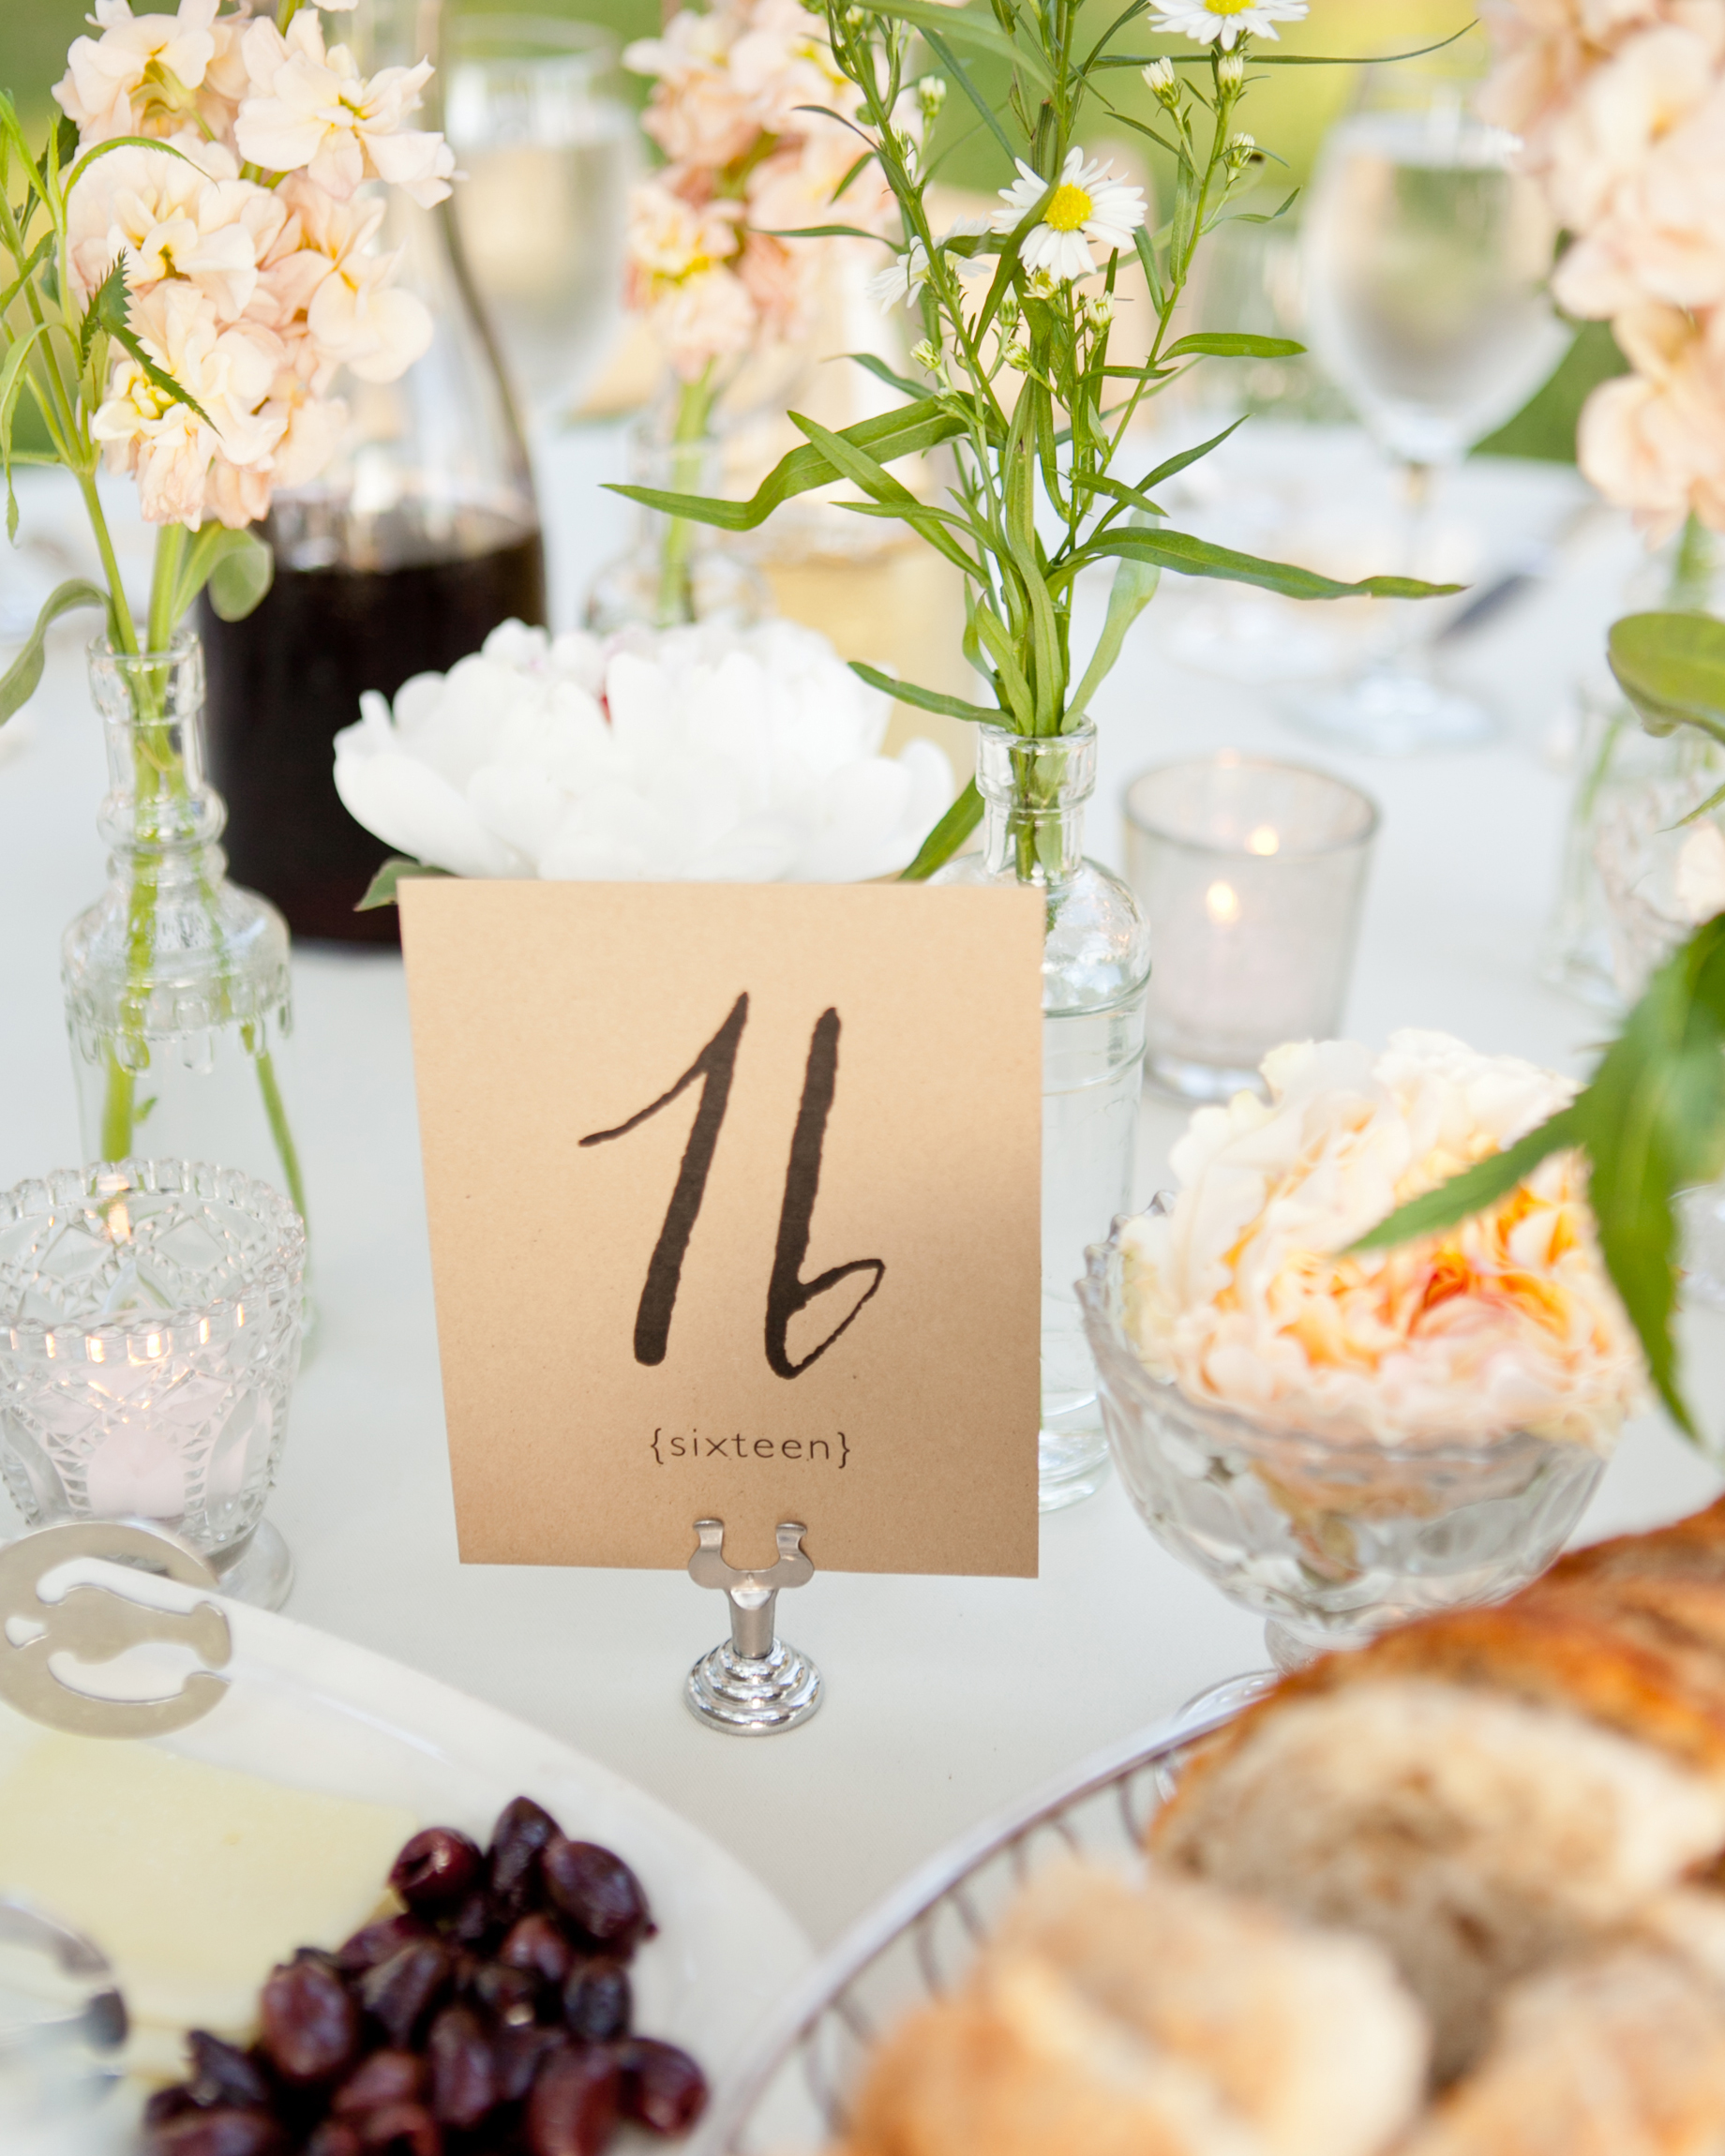 Bride-Designed Table Numbers